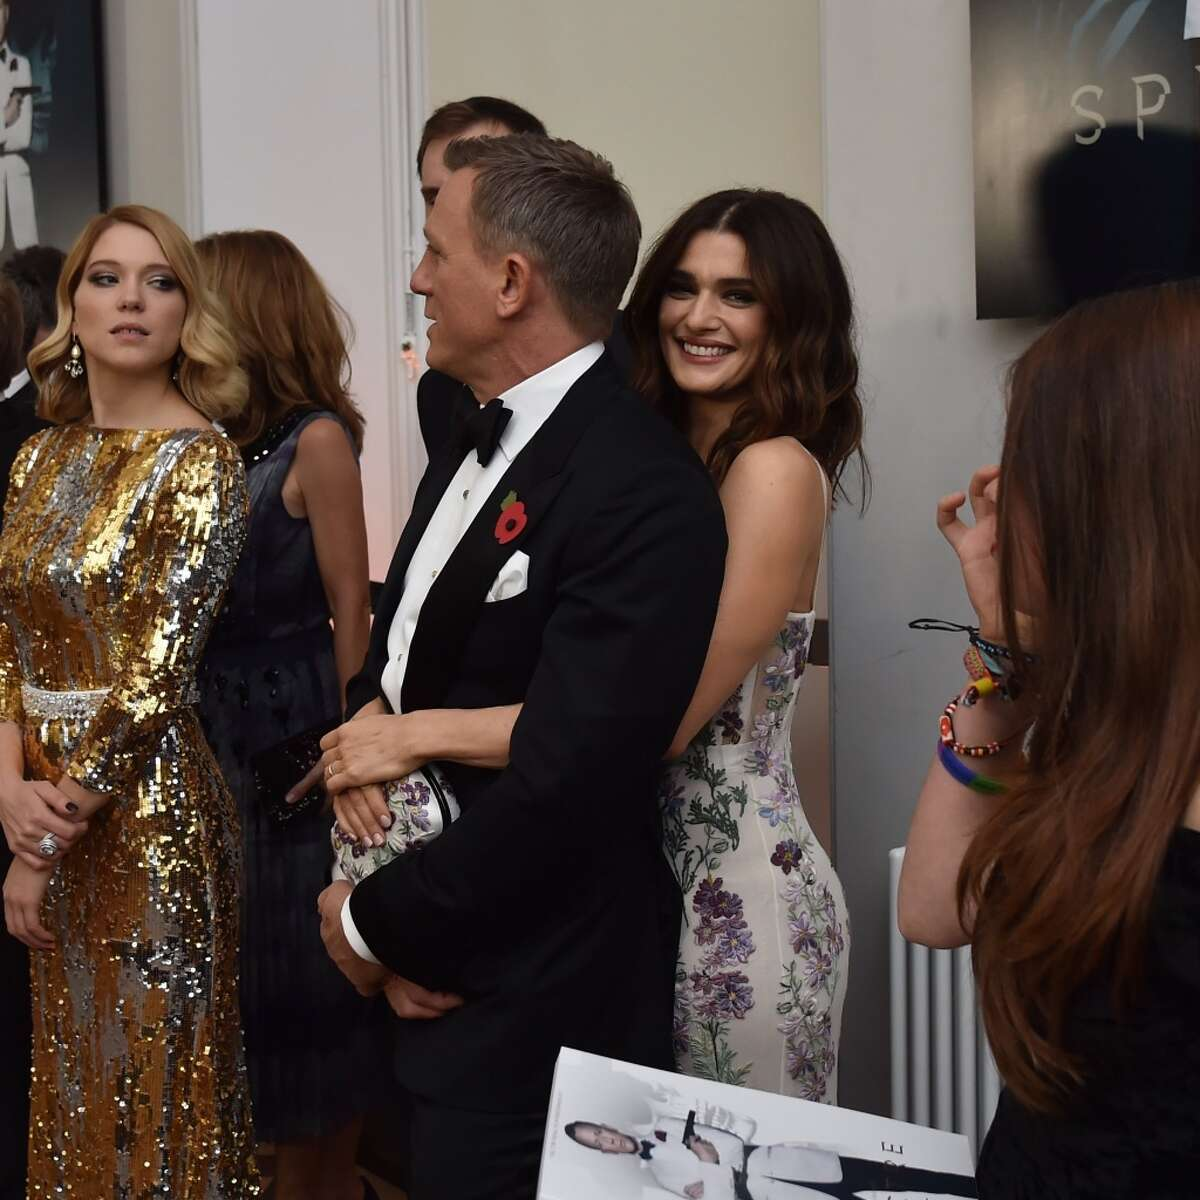 """Daniel Craig and wife Rachel Weisz attend The Cinema and Television Benevolent Fund's Royal Film Performance 2015 of the 24th James Bond Adventure, """"Spectre"""" at Royal Albert Hall on Oct. 26, 2015 in London, England."""